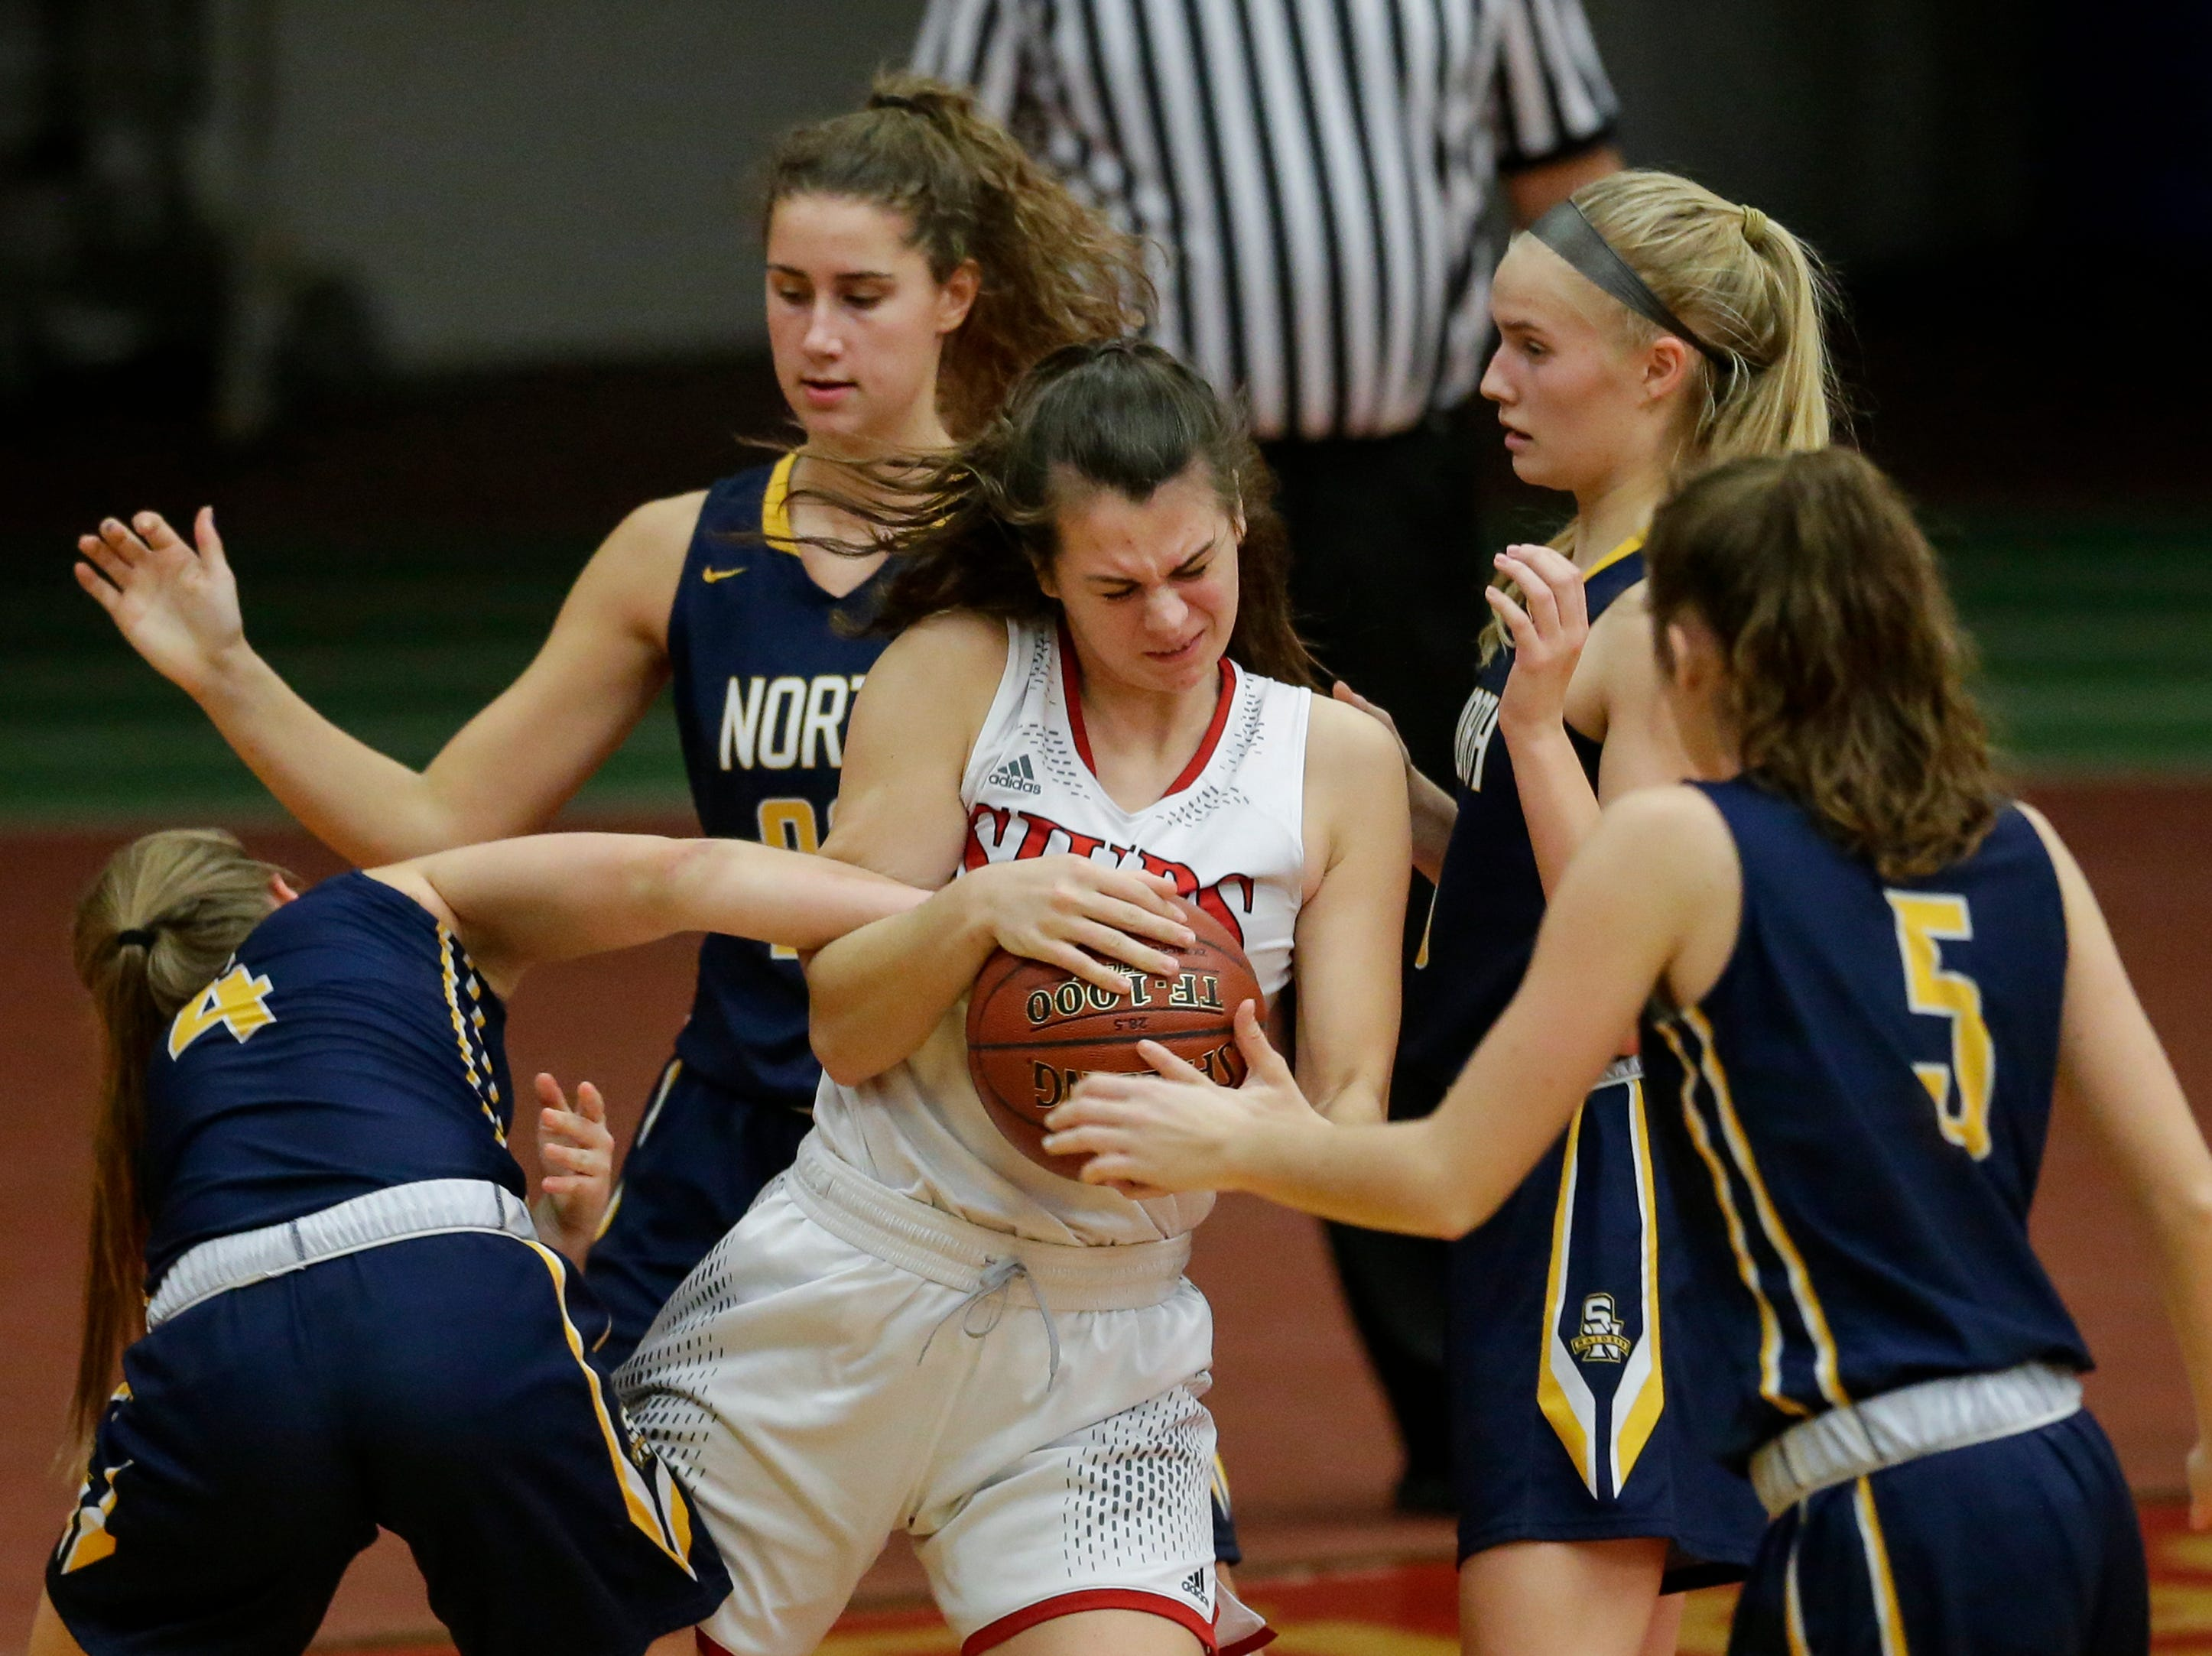 Manitowoc Lincoln's Claire Swoboda struggles to keep possession of the ball against Sheboygan North during a Fox River Classic Conference game at Manitowoc Lincoln High School Friday, December 14, 2018, in Manitowoc, Wis. Joshua Clark/USA TODAY NETWORK-Wisconsin